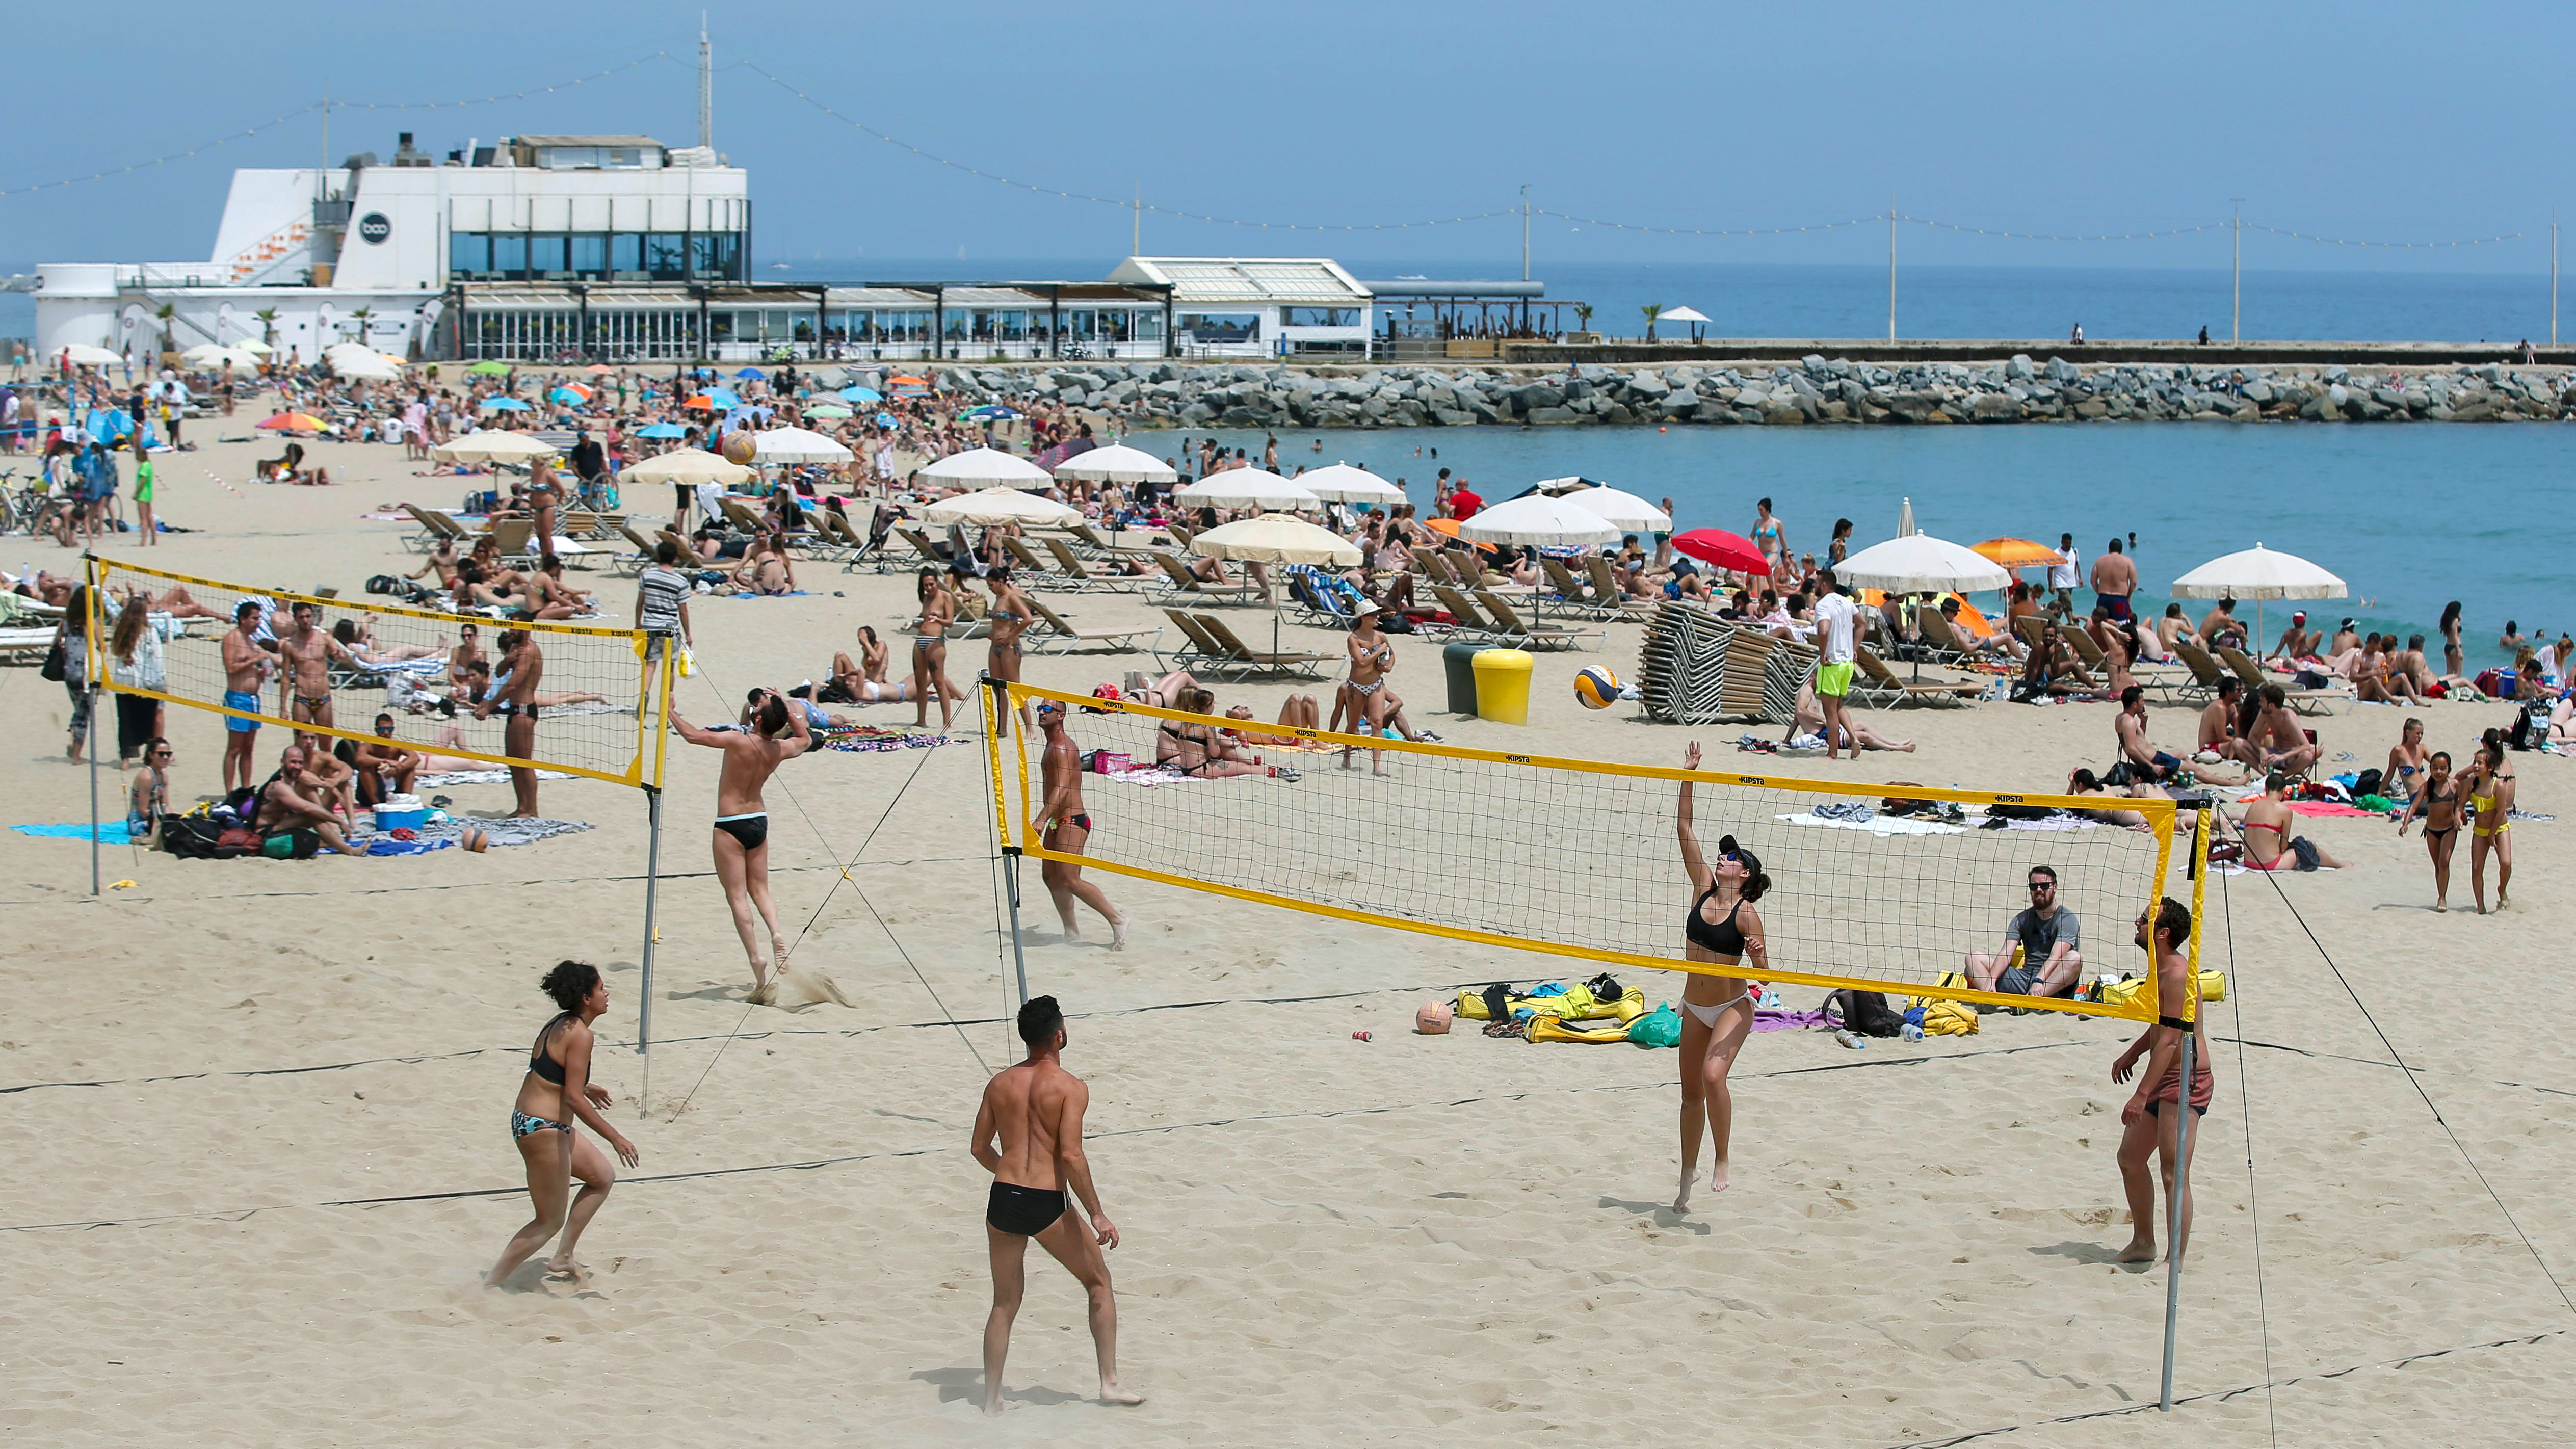 barcelona beaches your guide to picking the best stretch of sand cnn travel 2